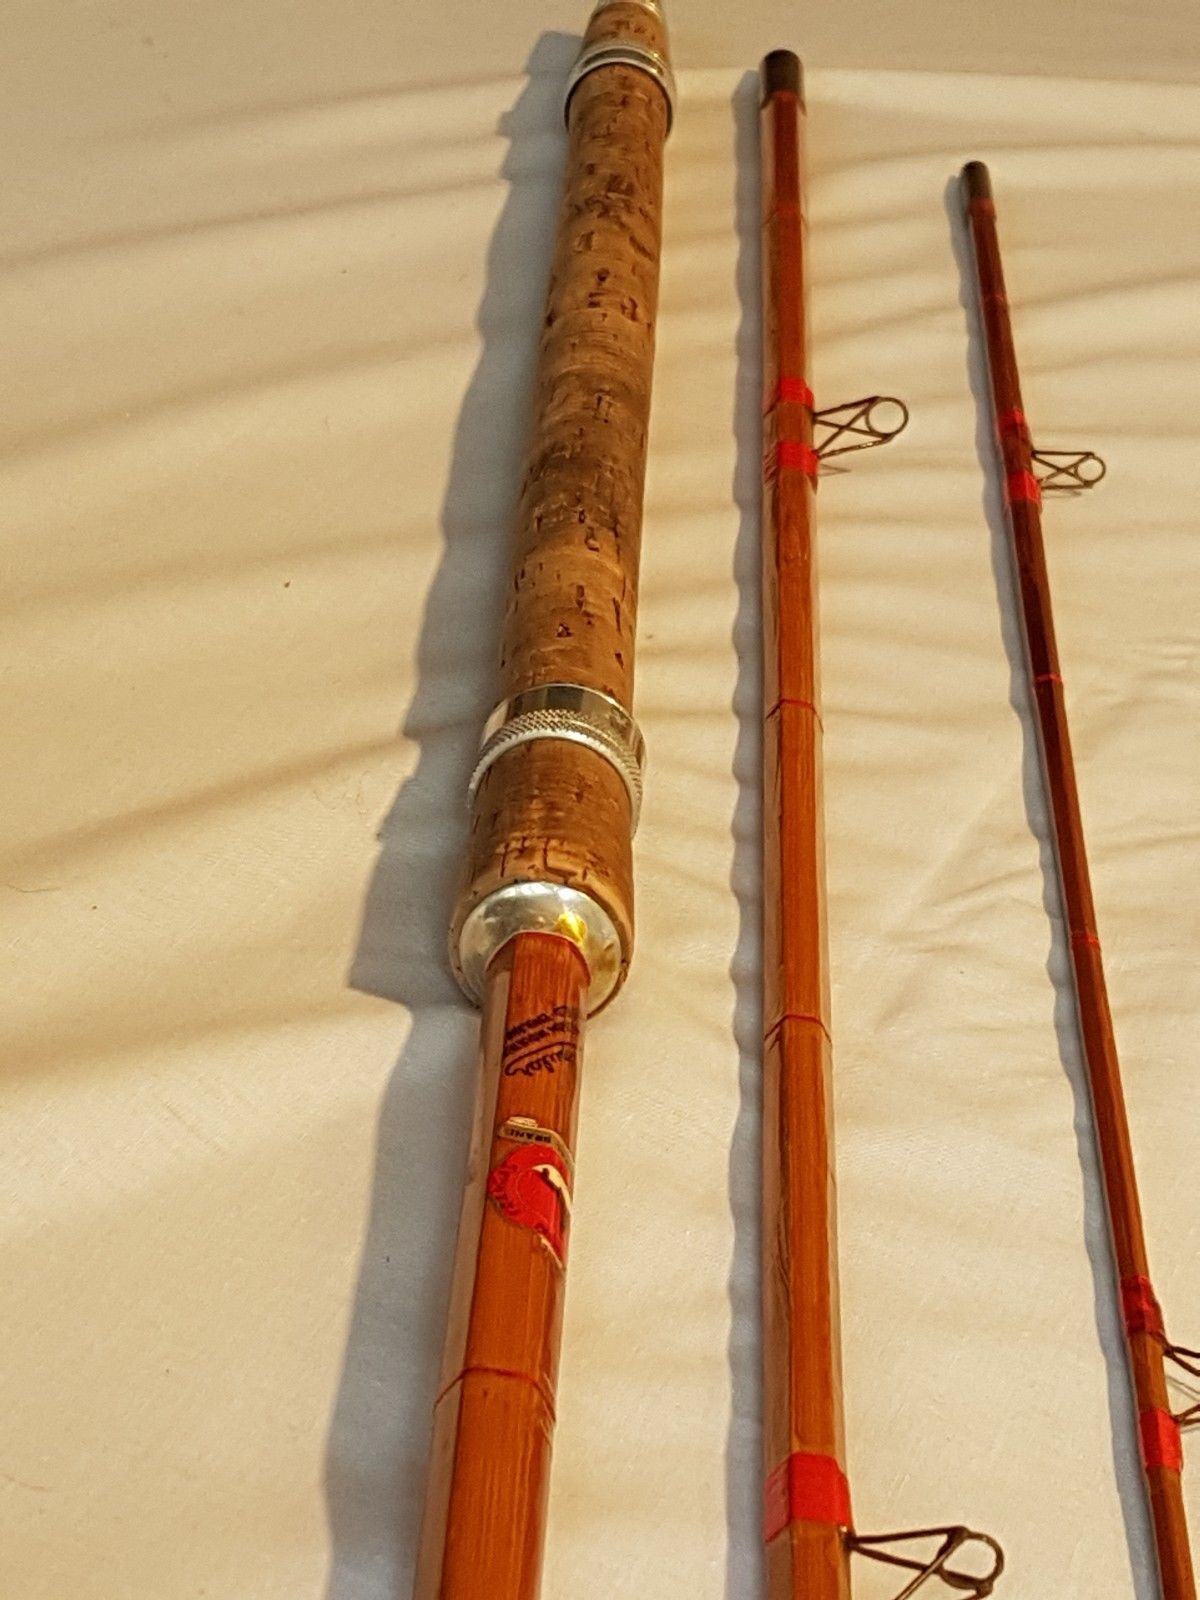 Vintage Royal Seal Mordex Popular 3 Piece 11ft Avon Split Cane Ebay Bamboo Fly Rod Bamboo Rods Vintage